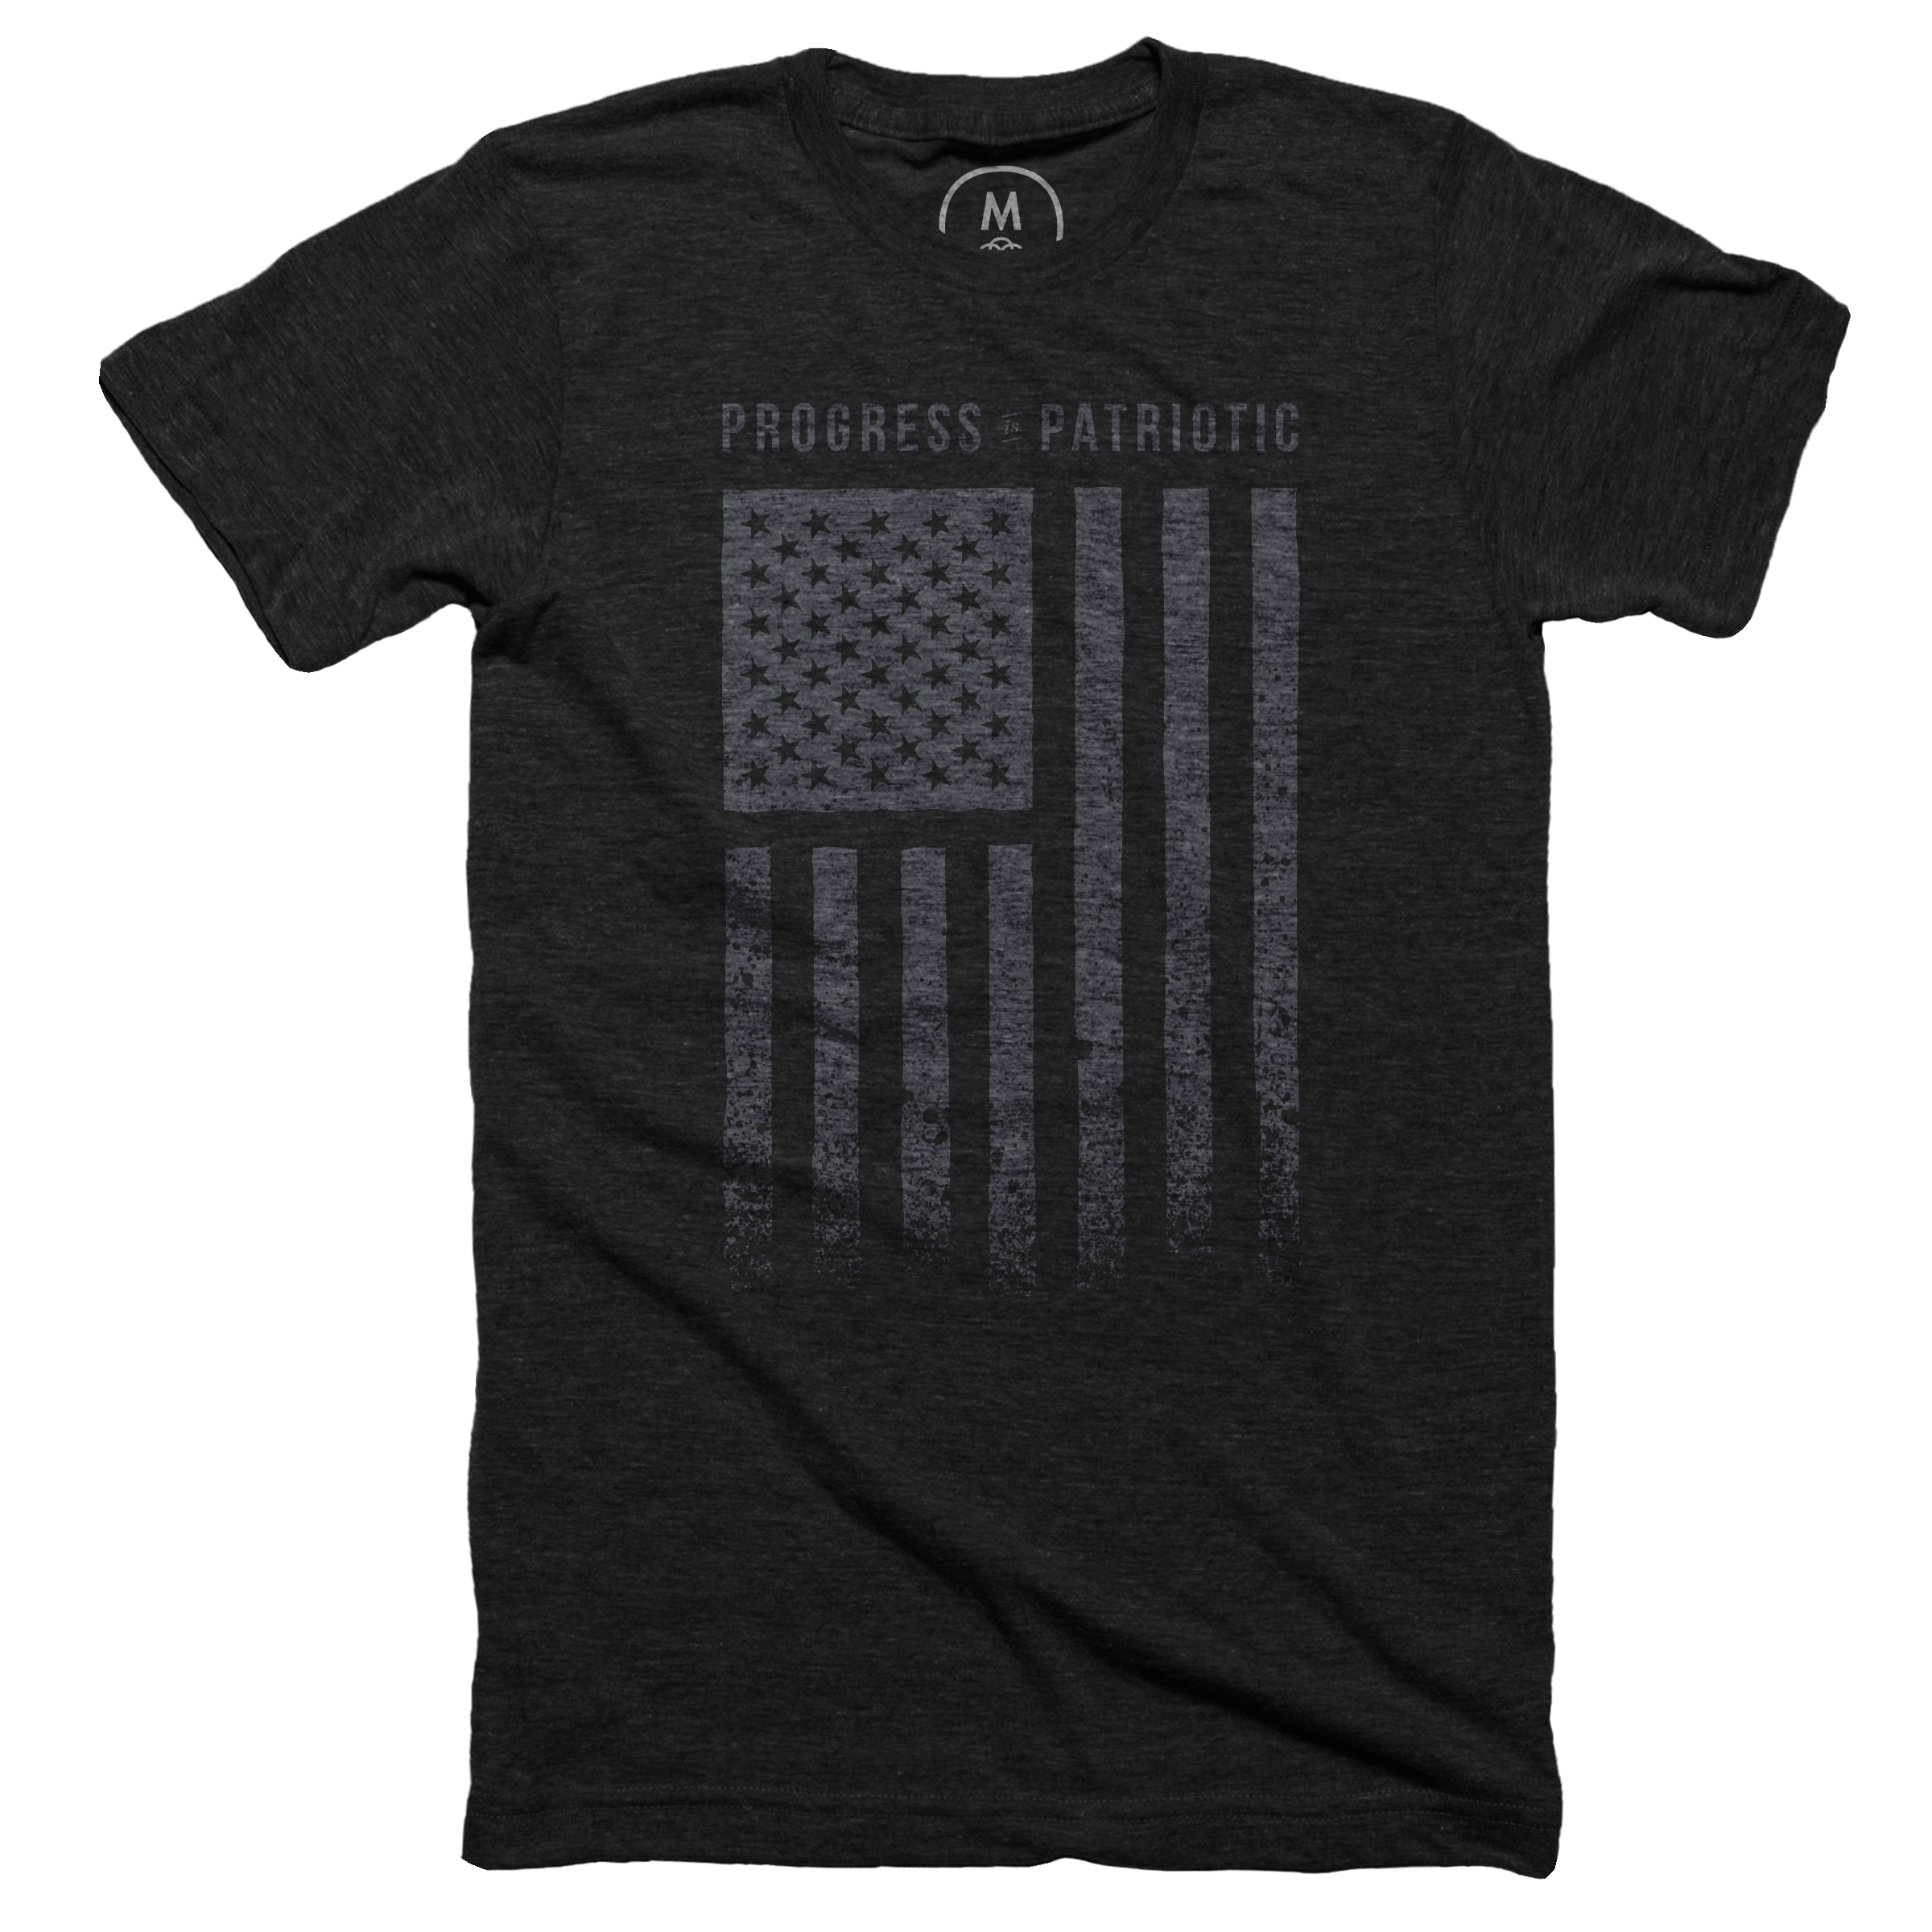 Progress is Patriotic Vintage Black (Men's)